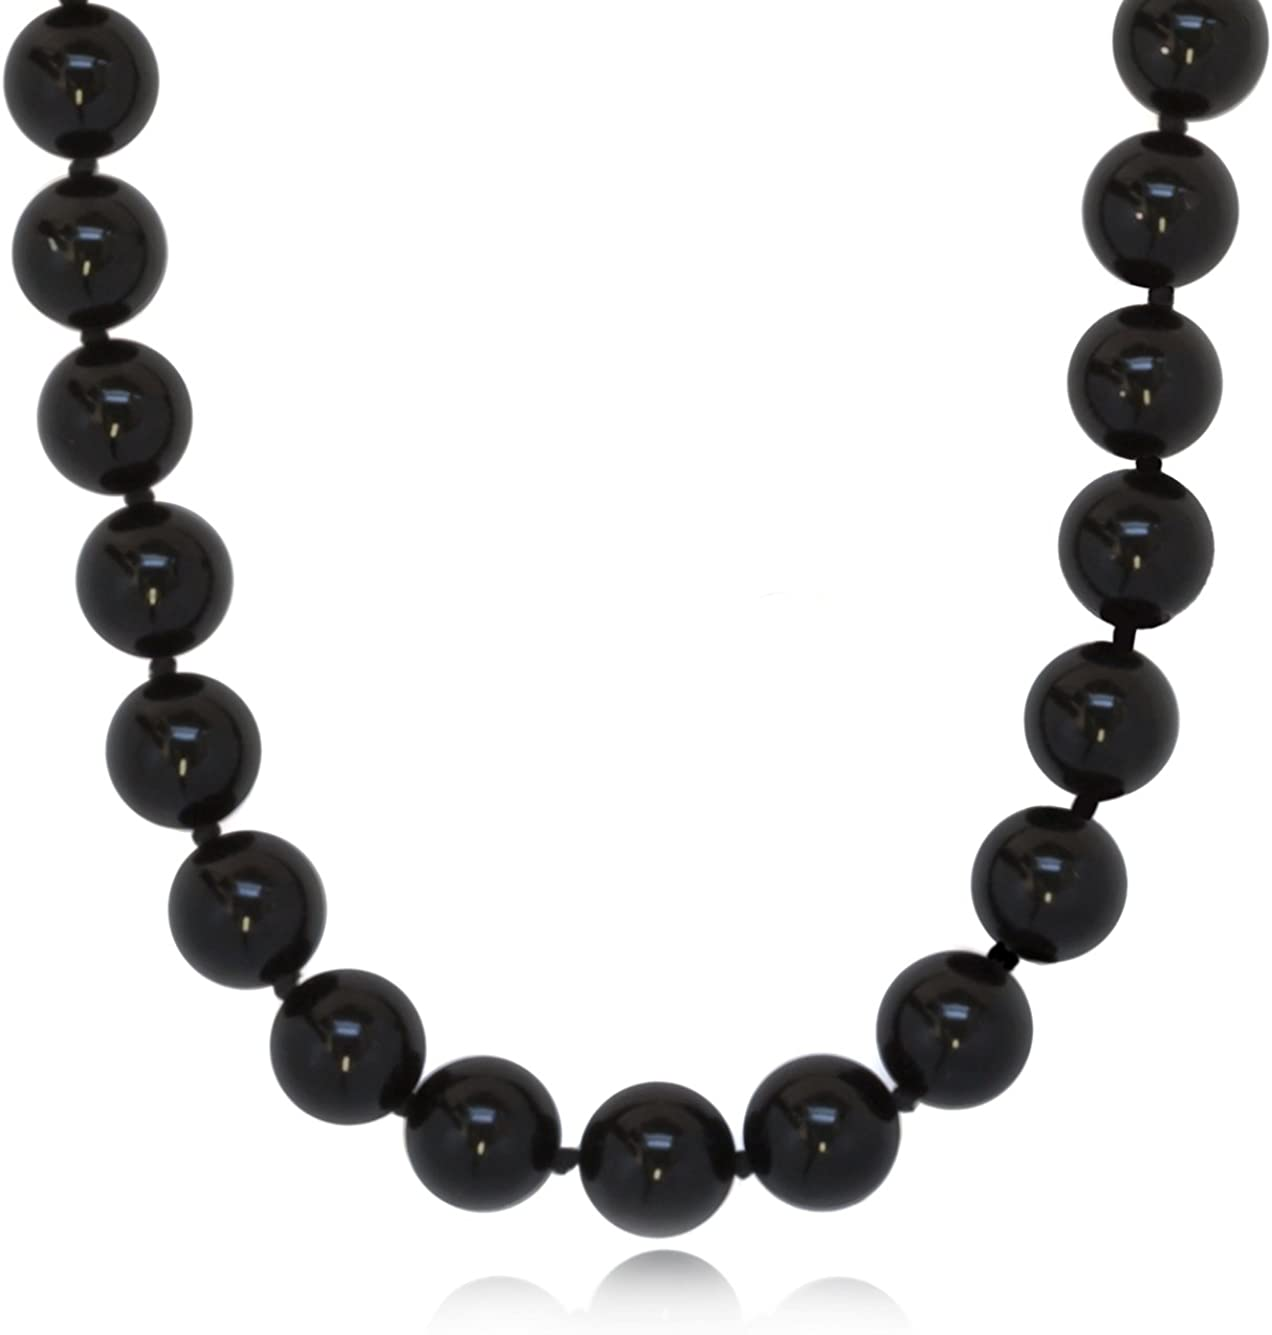 Onyx twist necklace on 28inch sterling silver chain black onyx polished minimalist pendant for protection and grounding